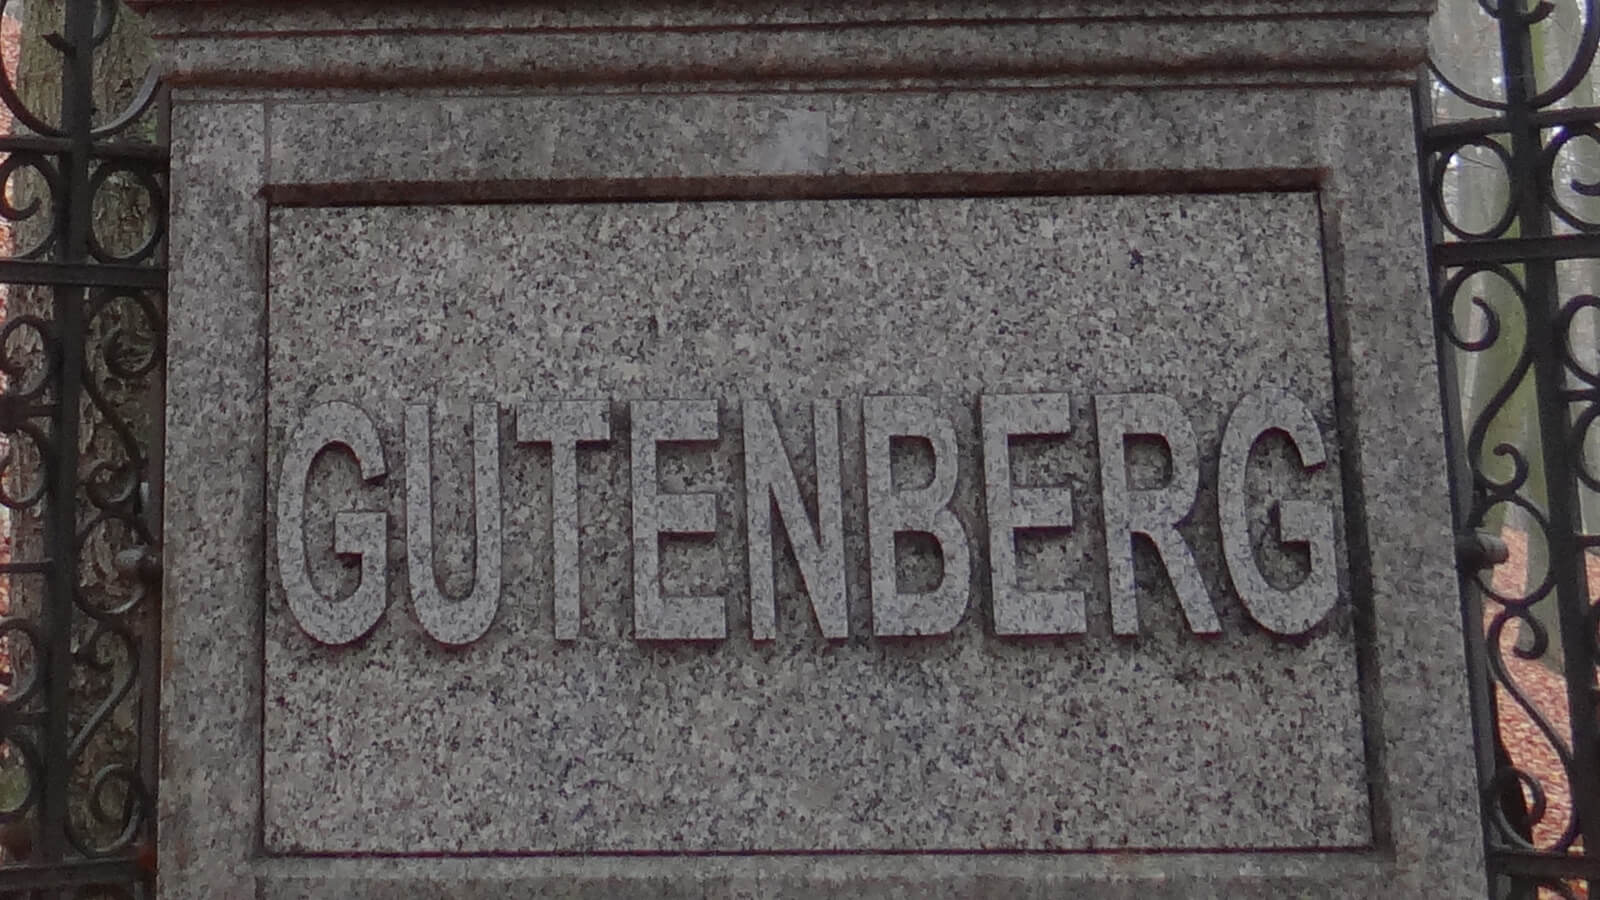 Gutenberg's name will always be linked to the printing press.